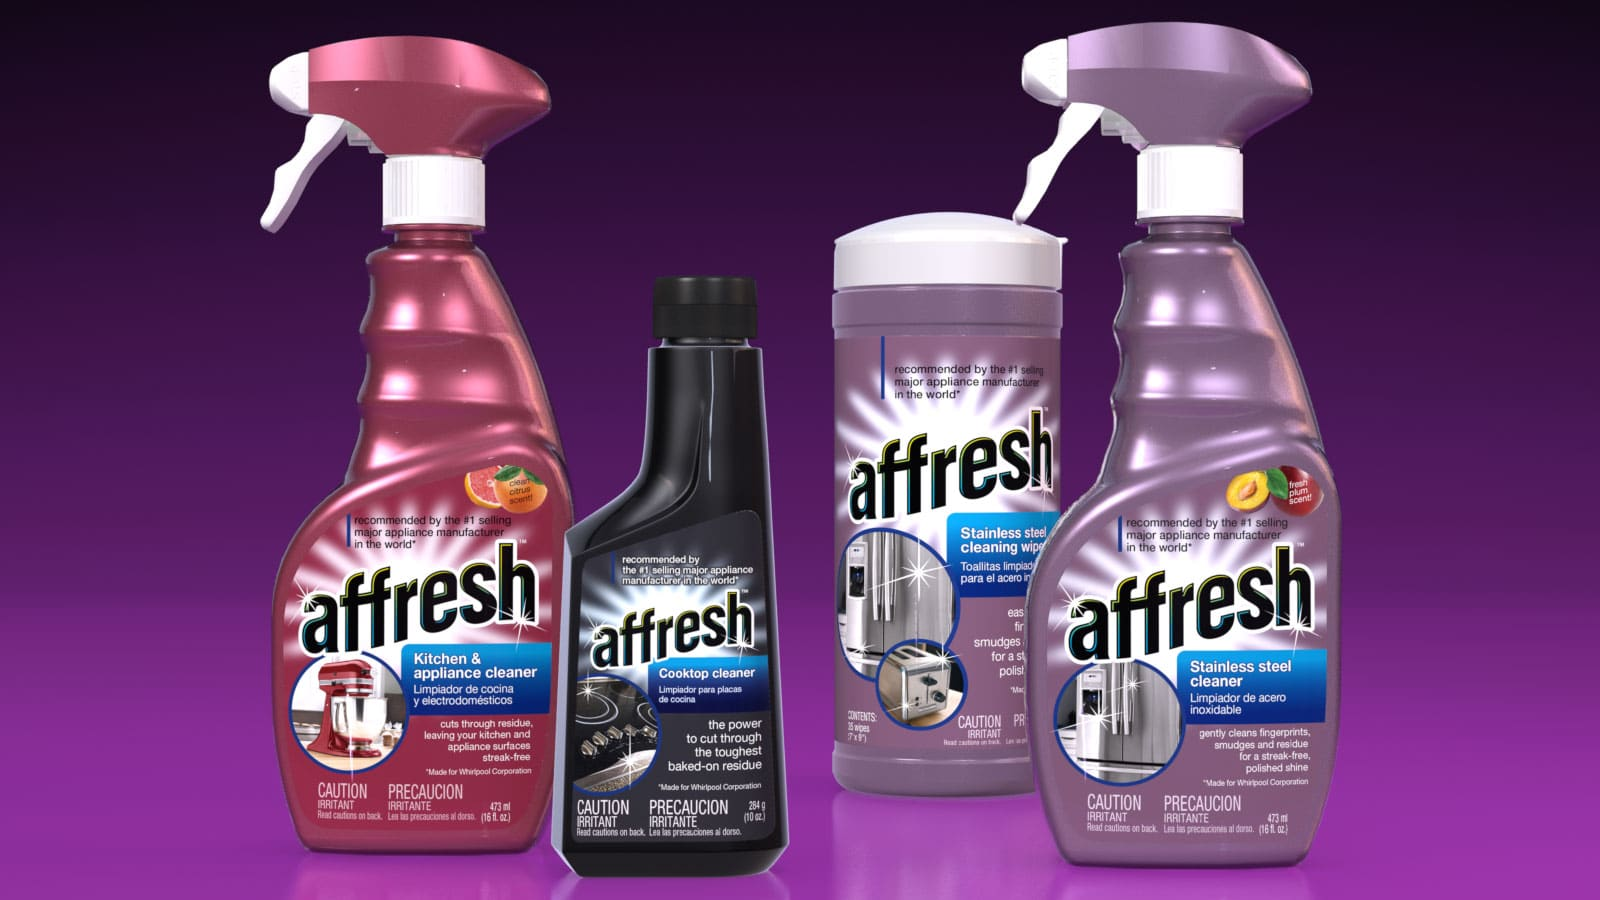 affresh brand cleaning products line brand and package design